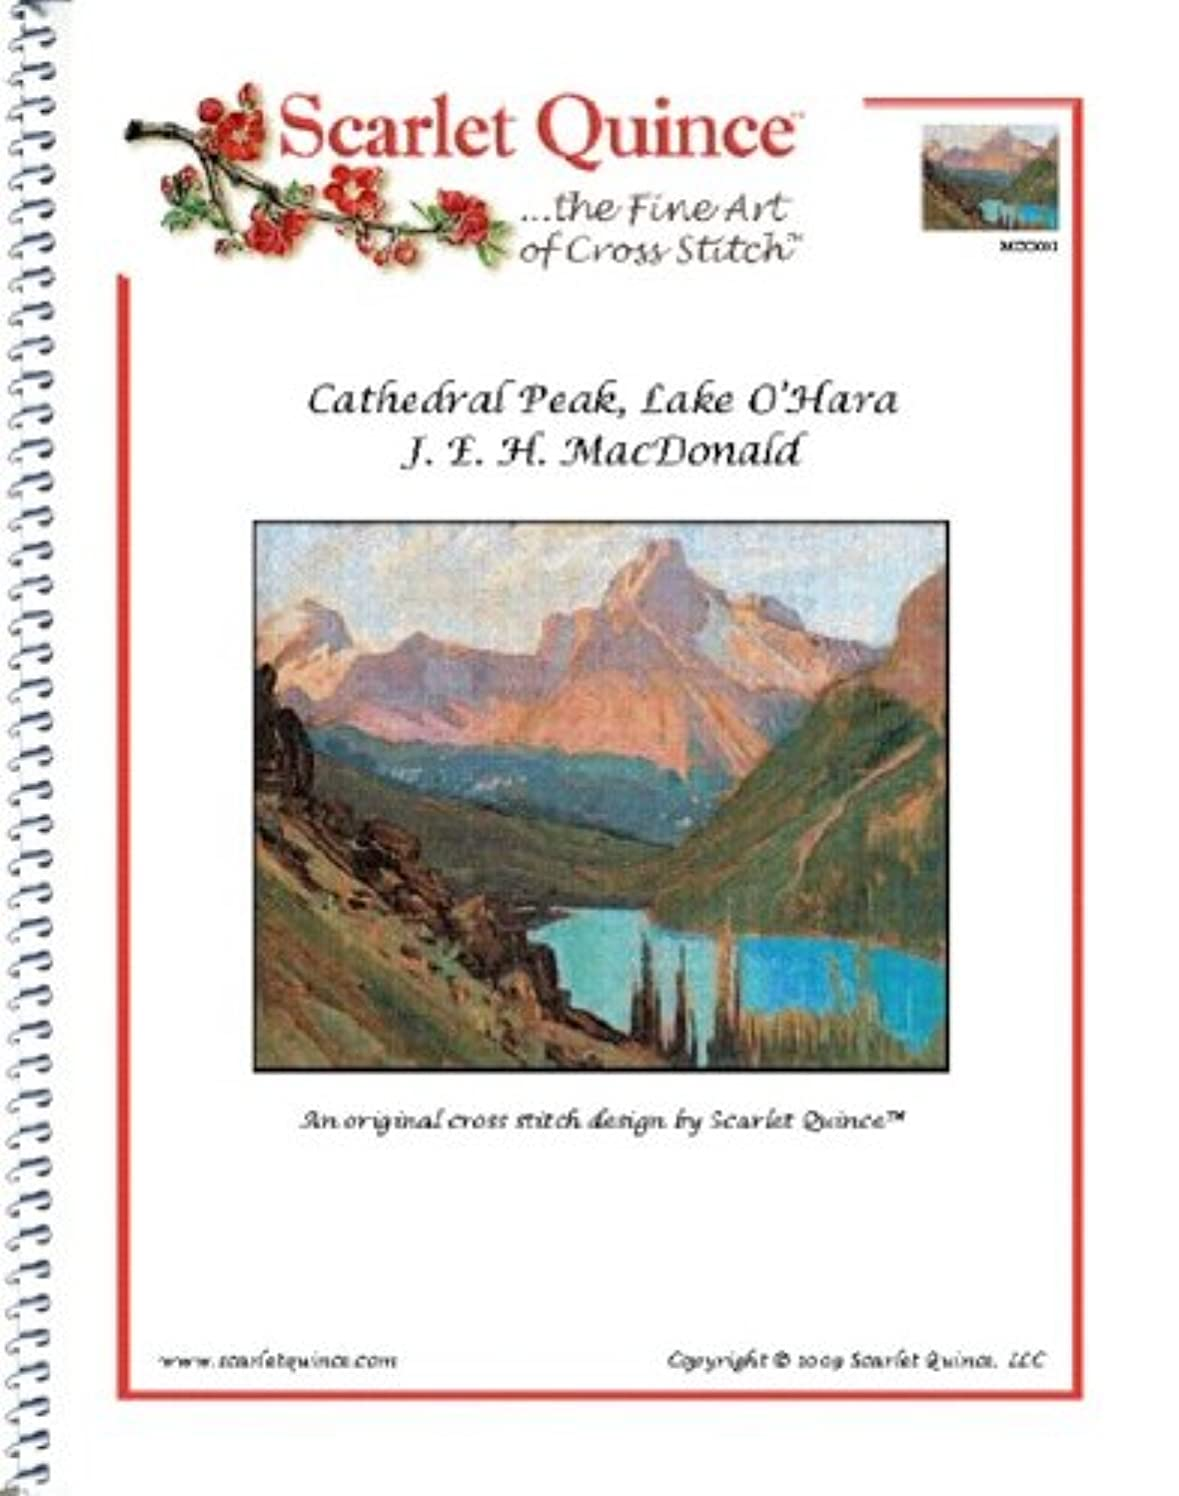 Scarlet Quince MDO001 Cathedral Peak, Lake O'Hara by J. E. H. MacDonald Counted Cross Stitch Chart, Regular Size Symbols